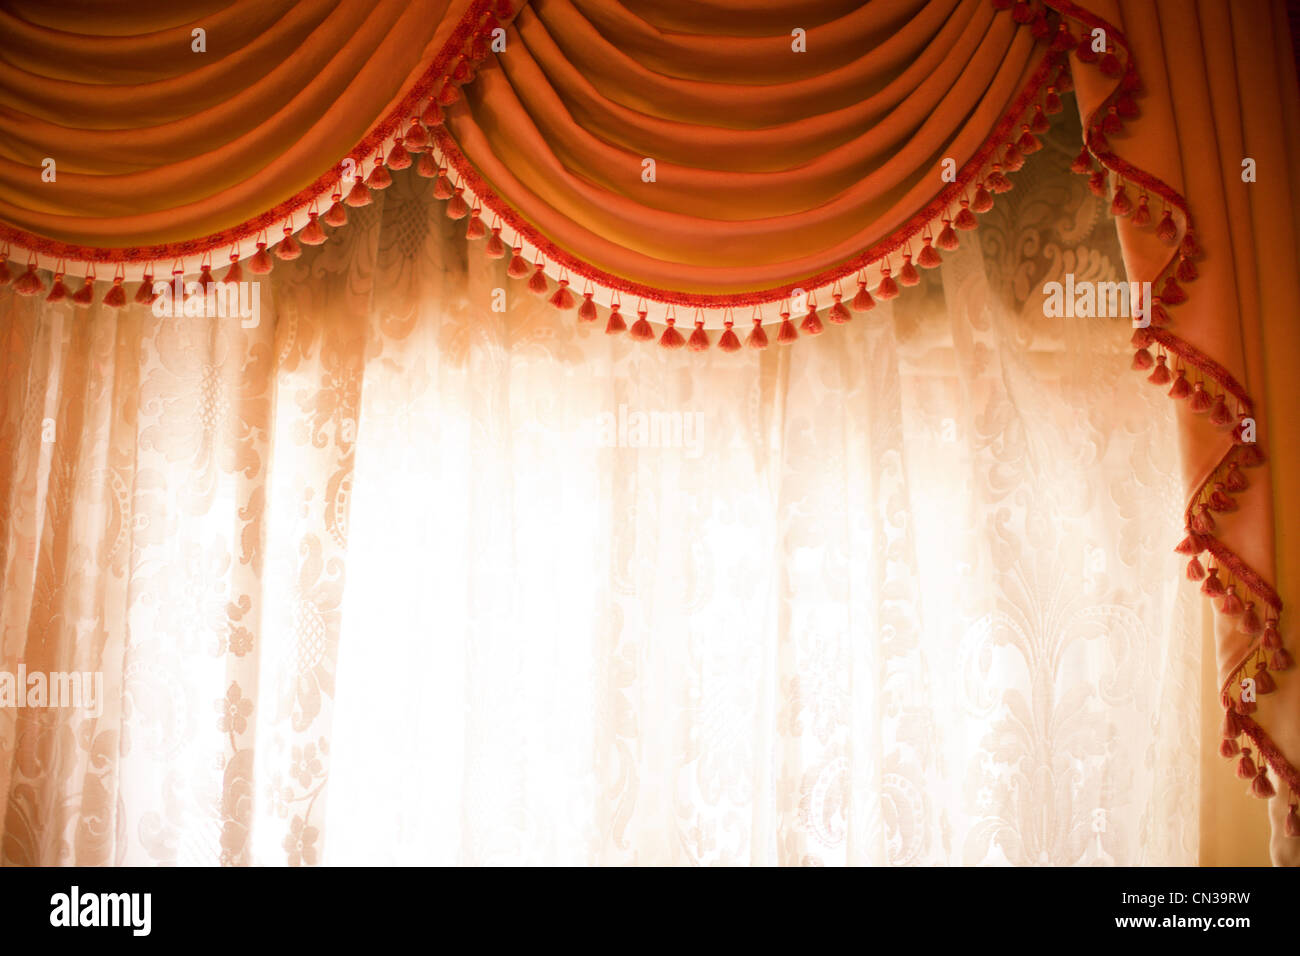 Window and curtains - Stock Image